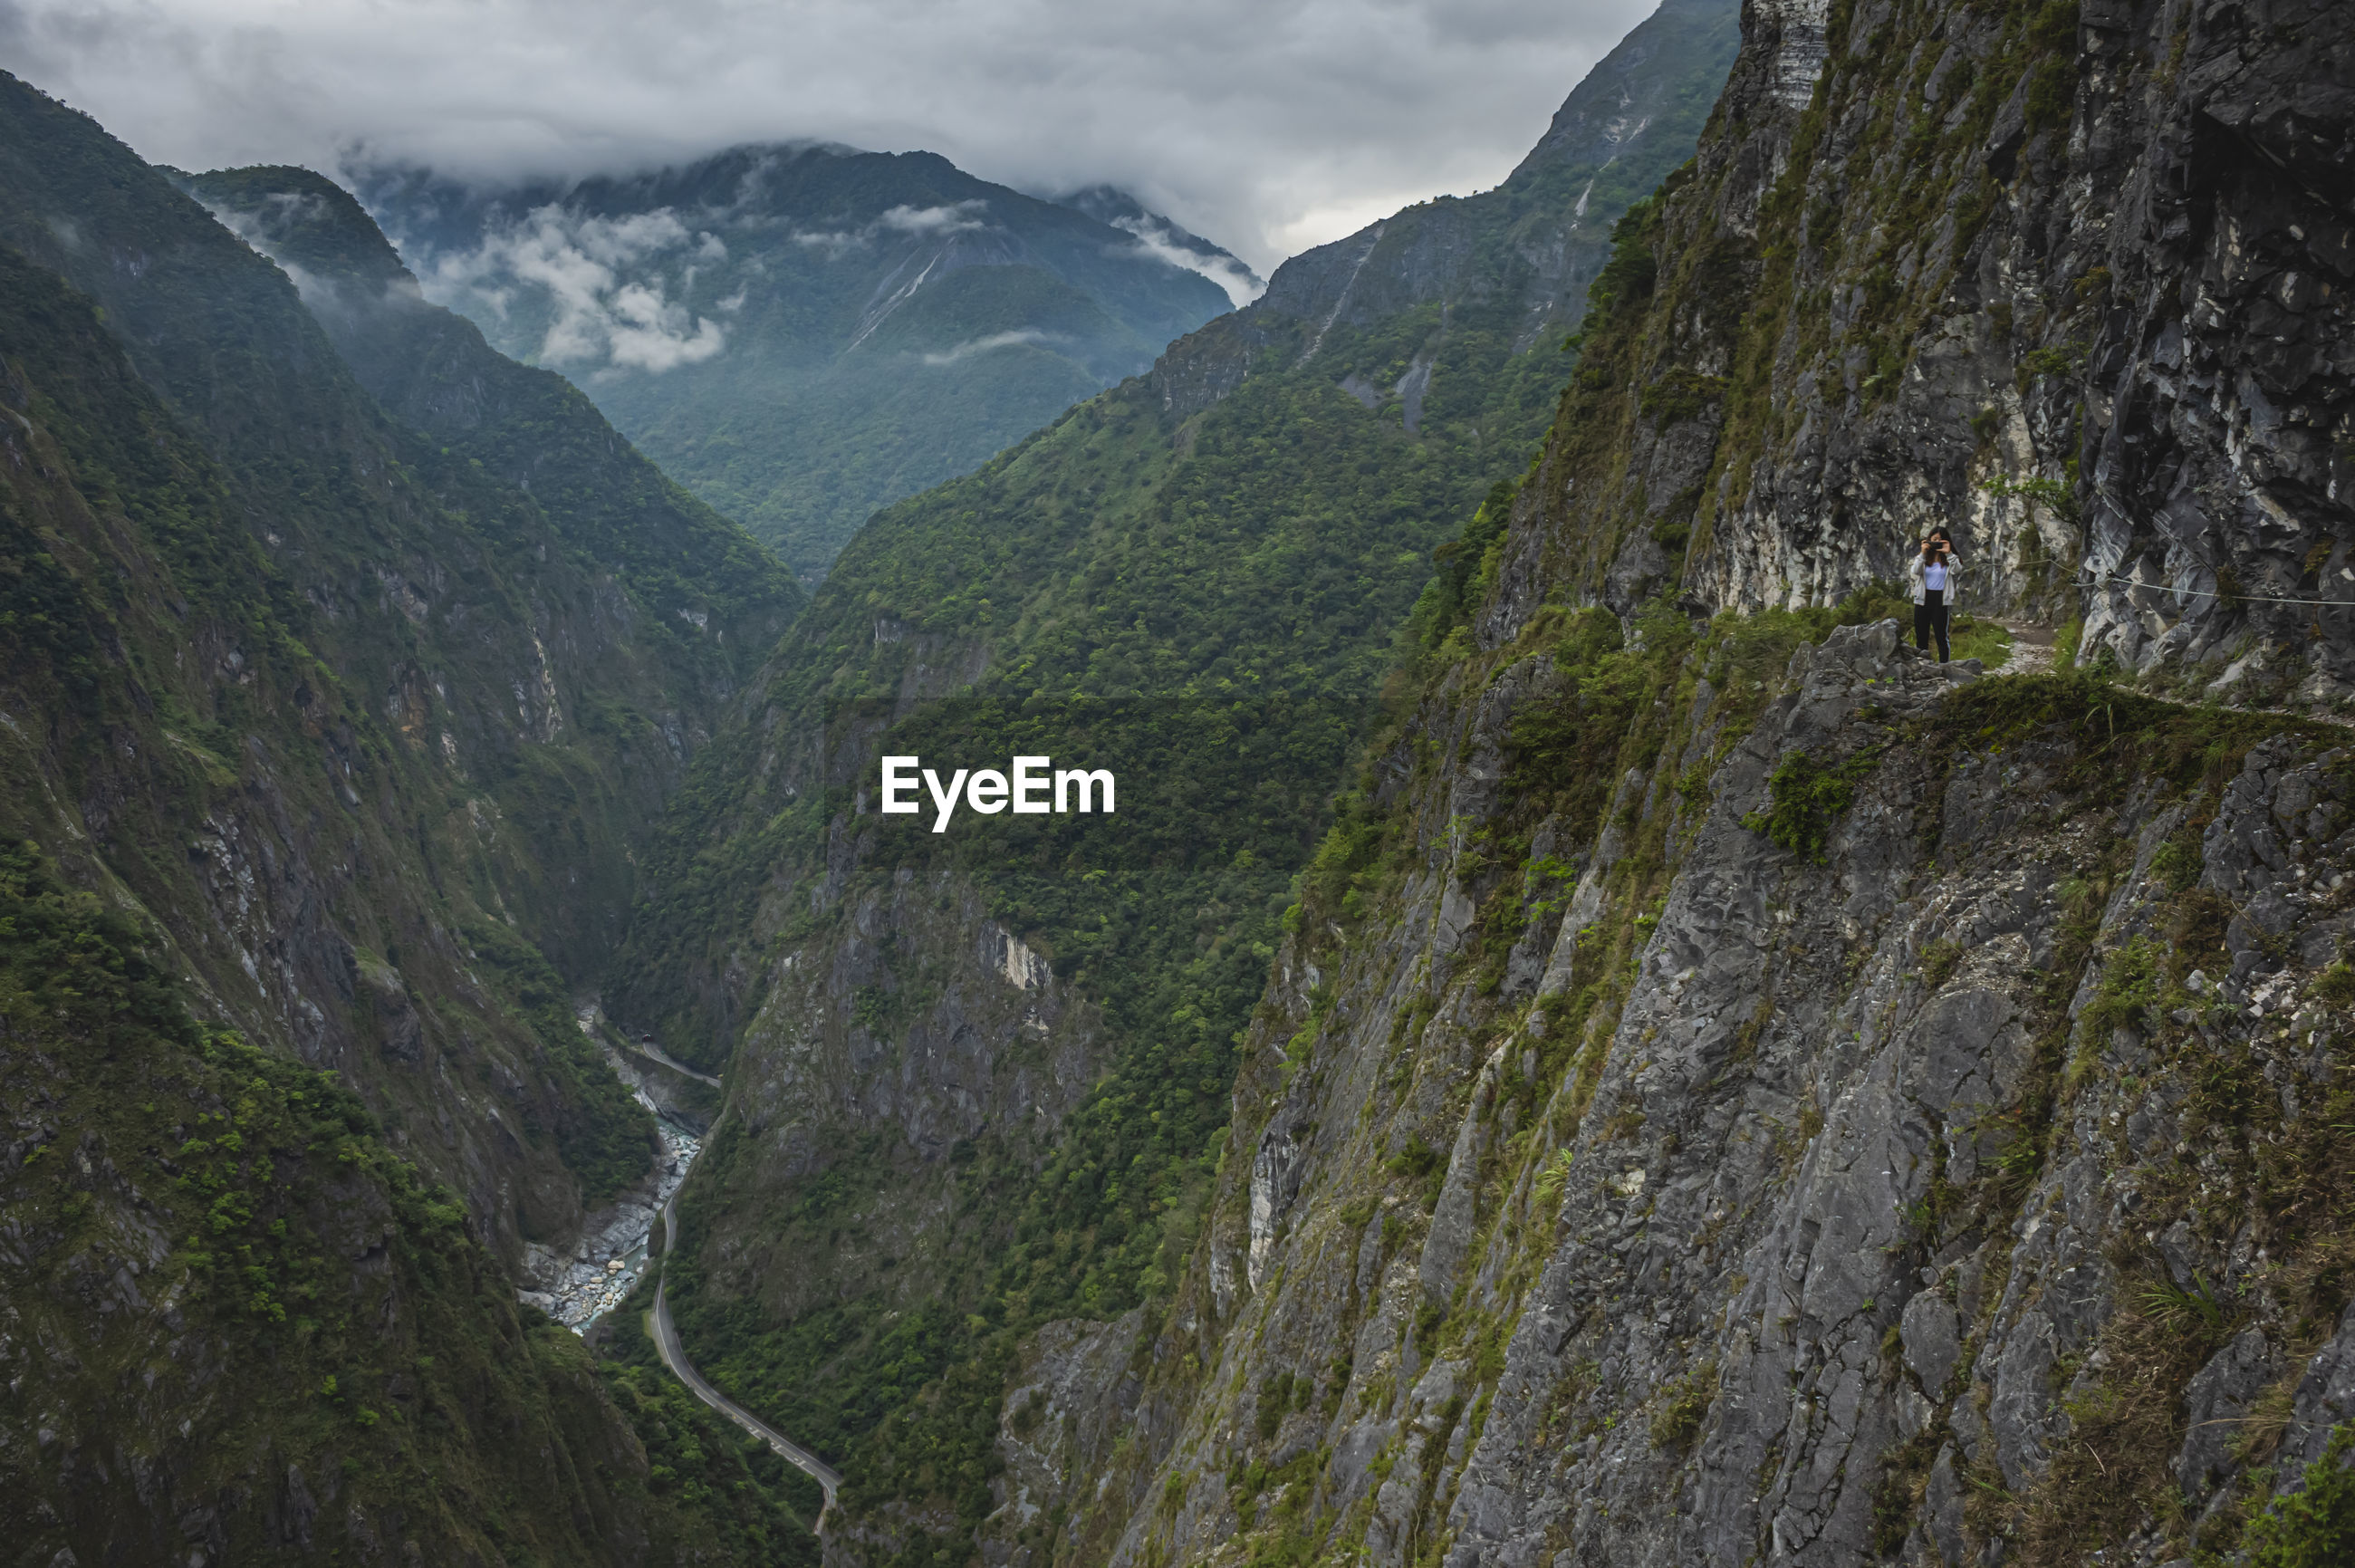 SCENIC VIEW OF VALLEY